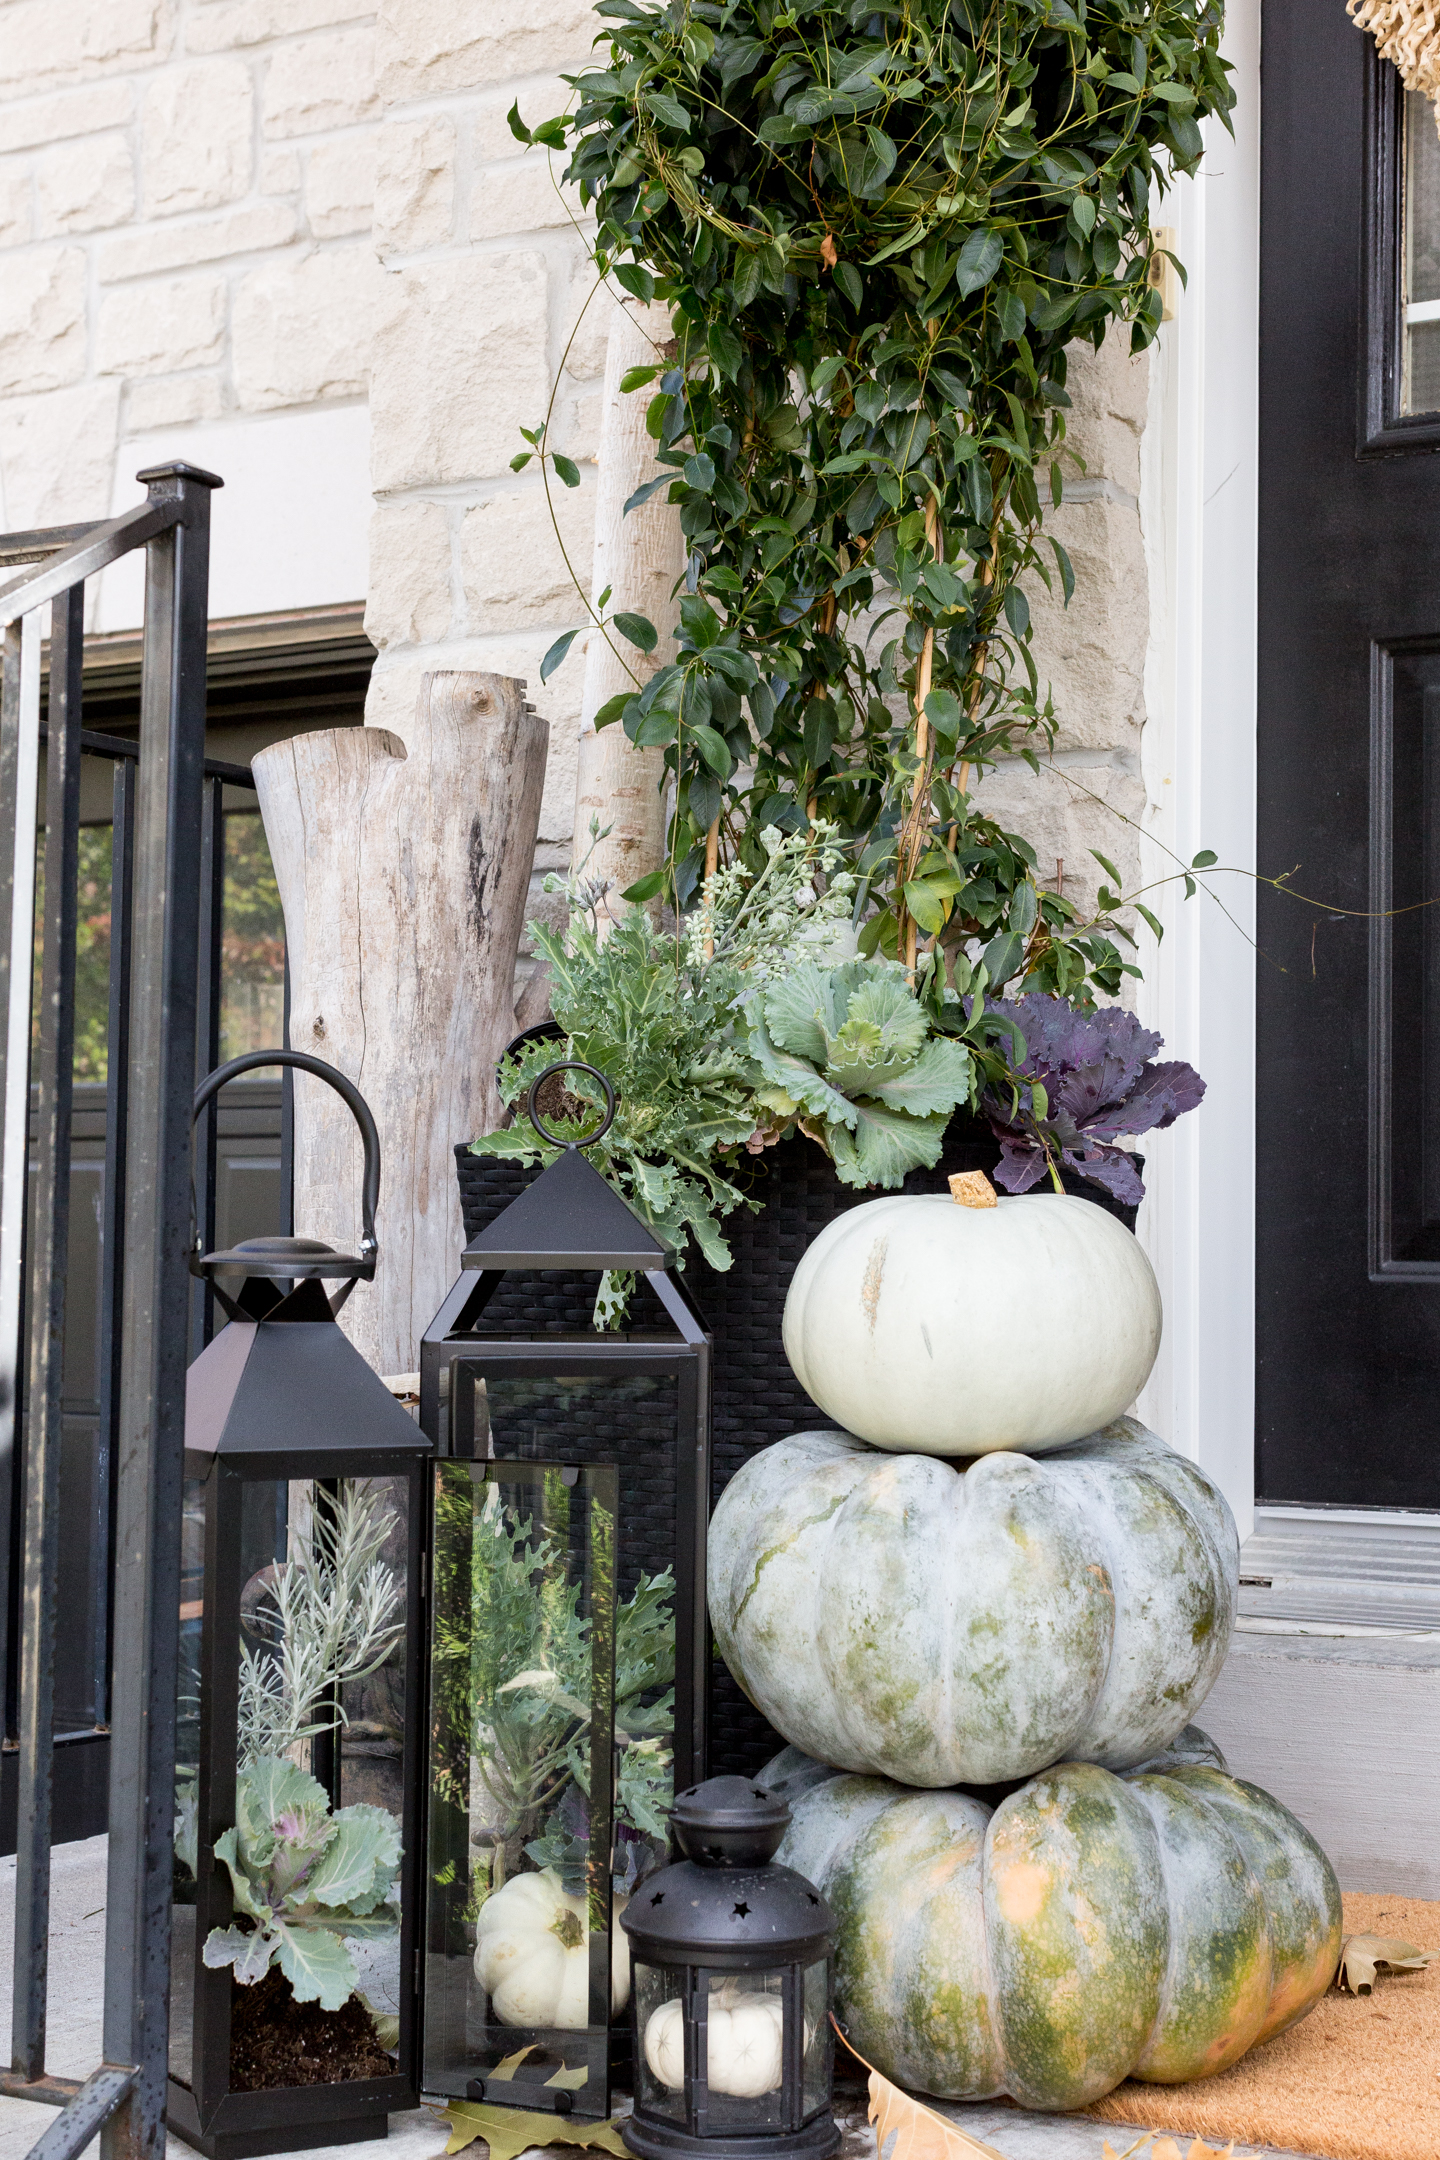 11 Fall Front Porch Ideas That Will Make Your Neighbors